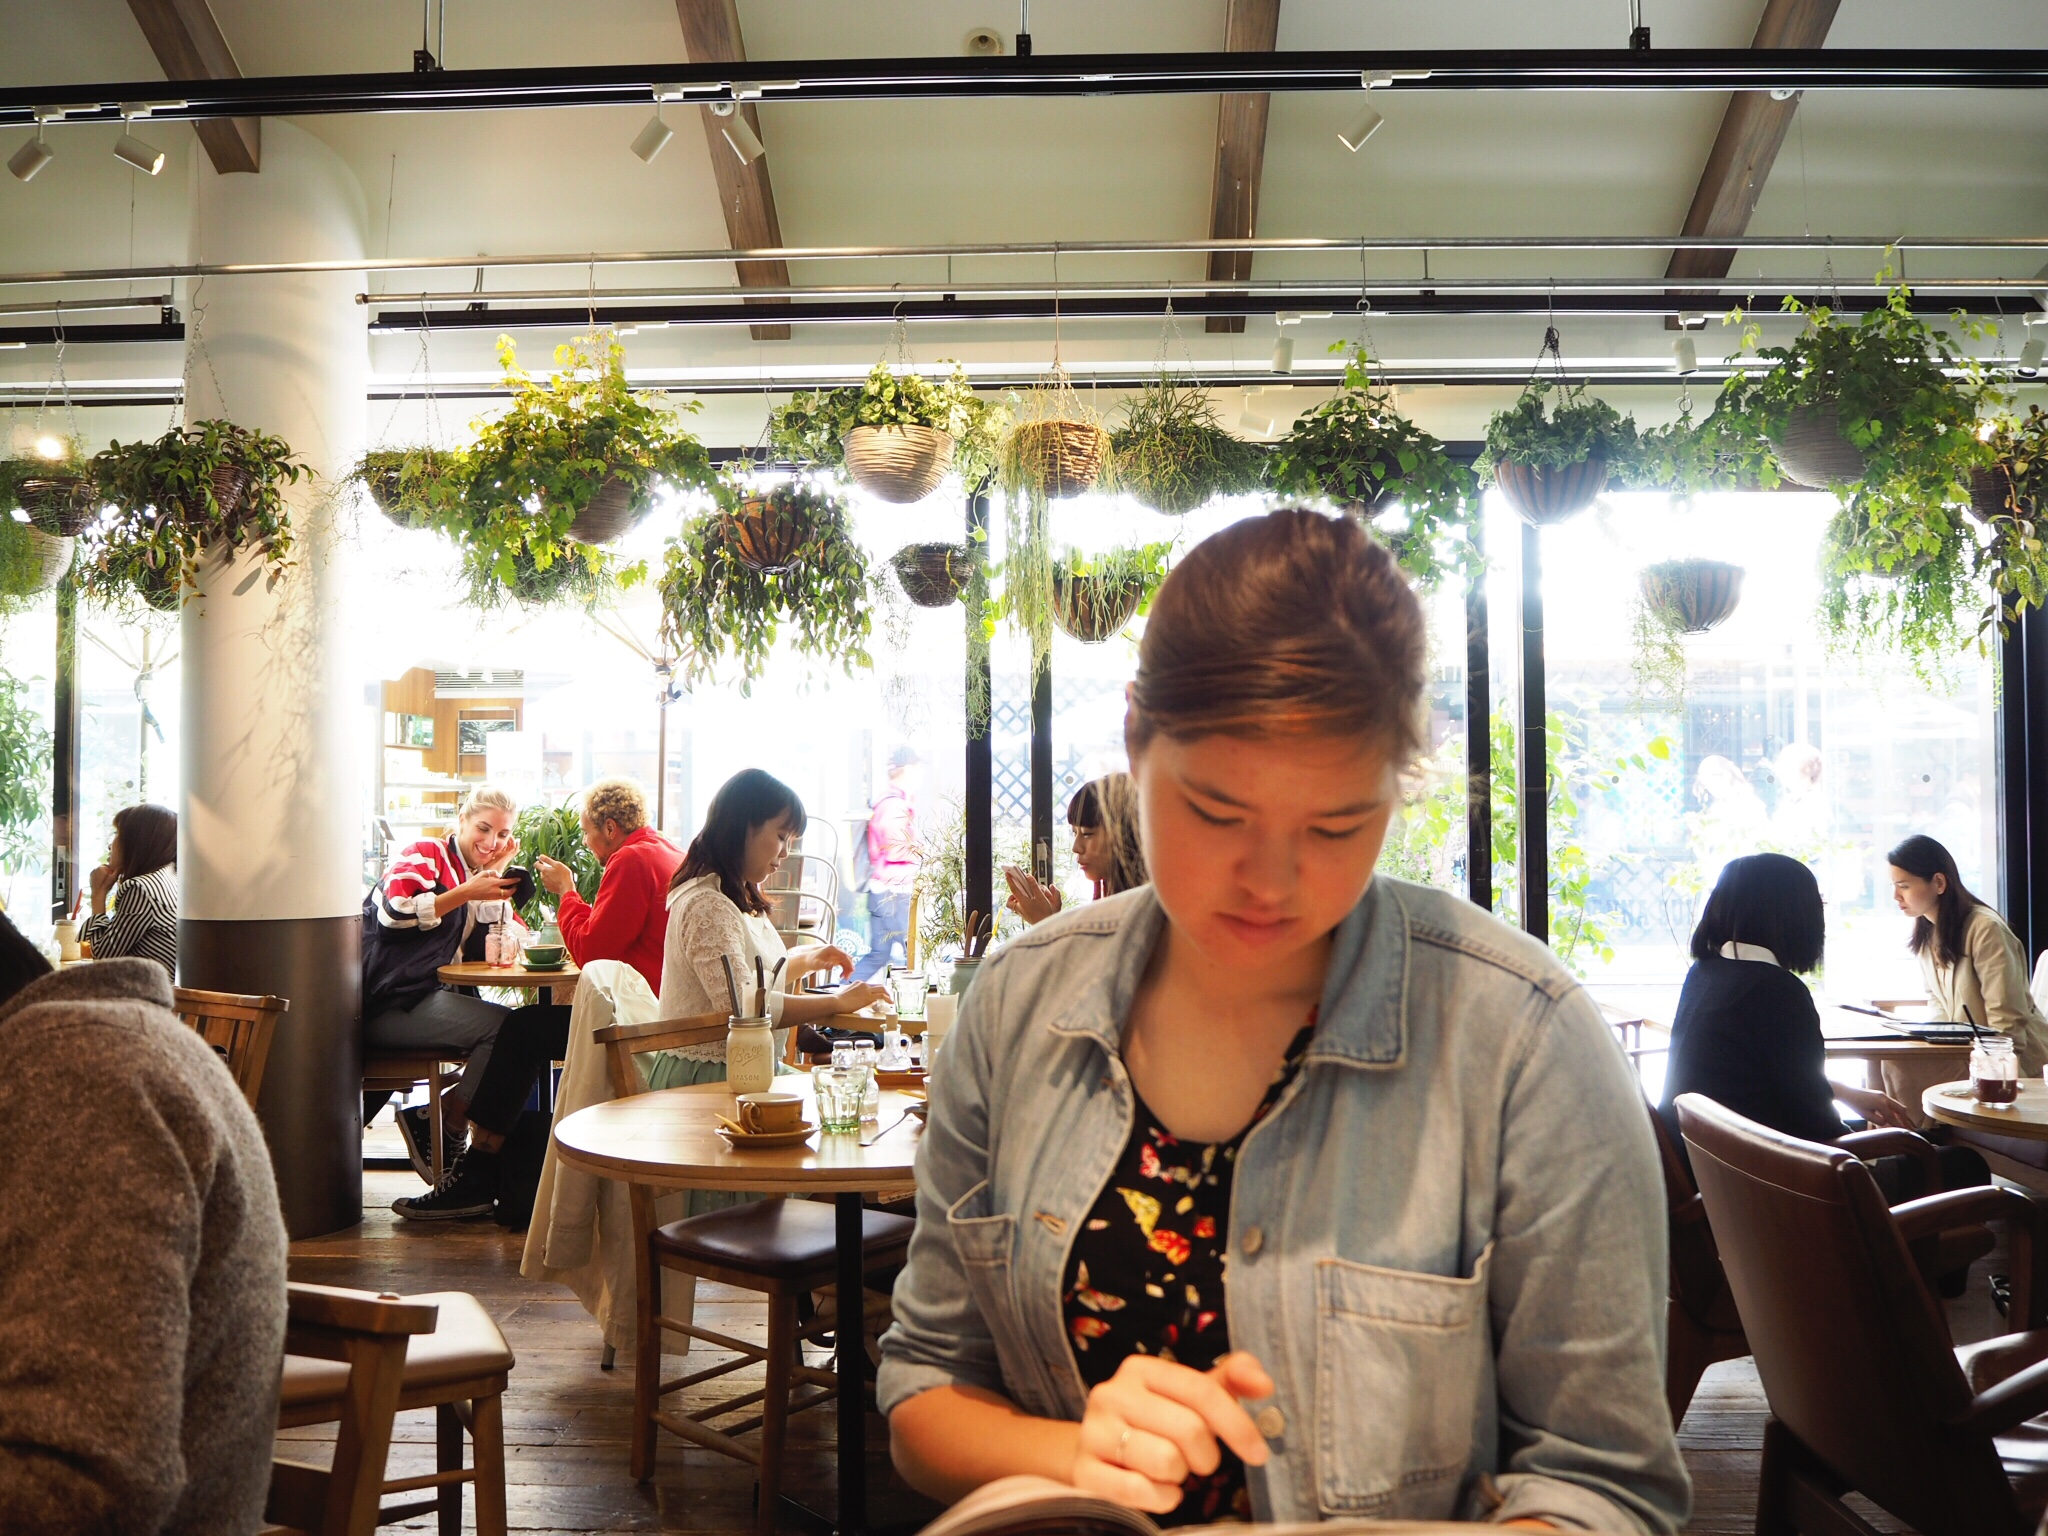 Sister checking out the menu in Hello Farmer, a plant-filled cafe in Shinjuku.